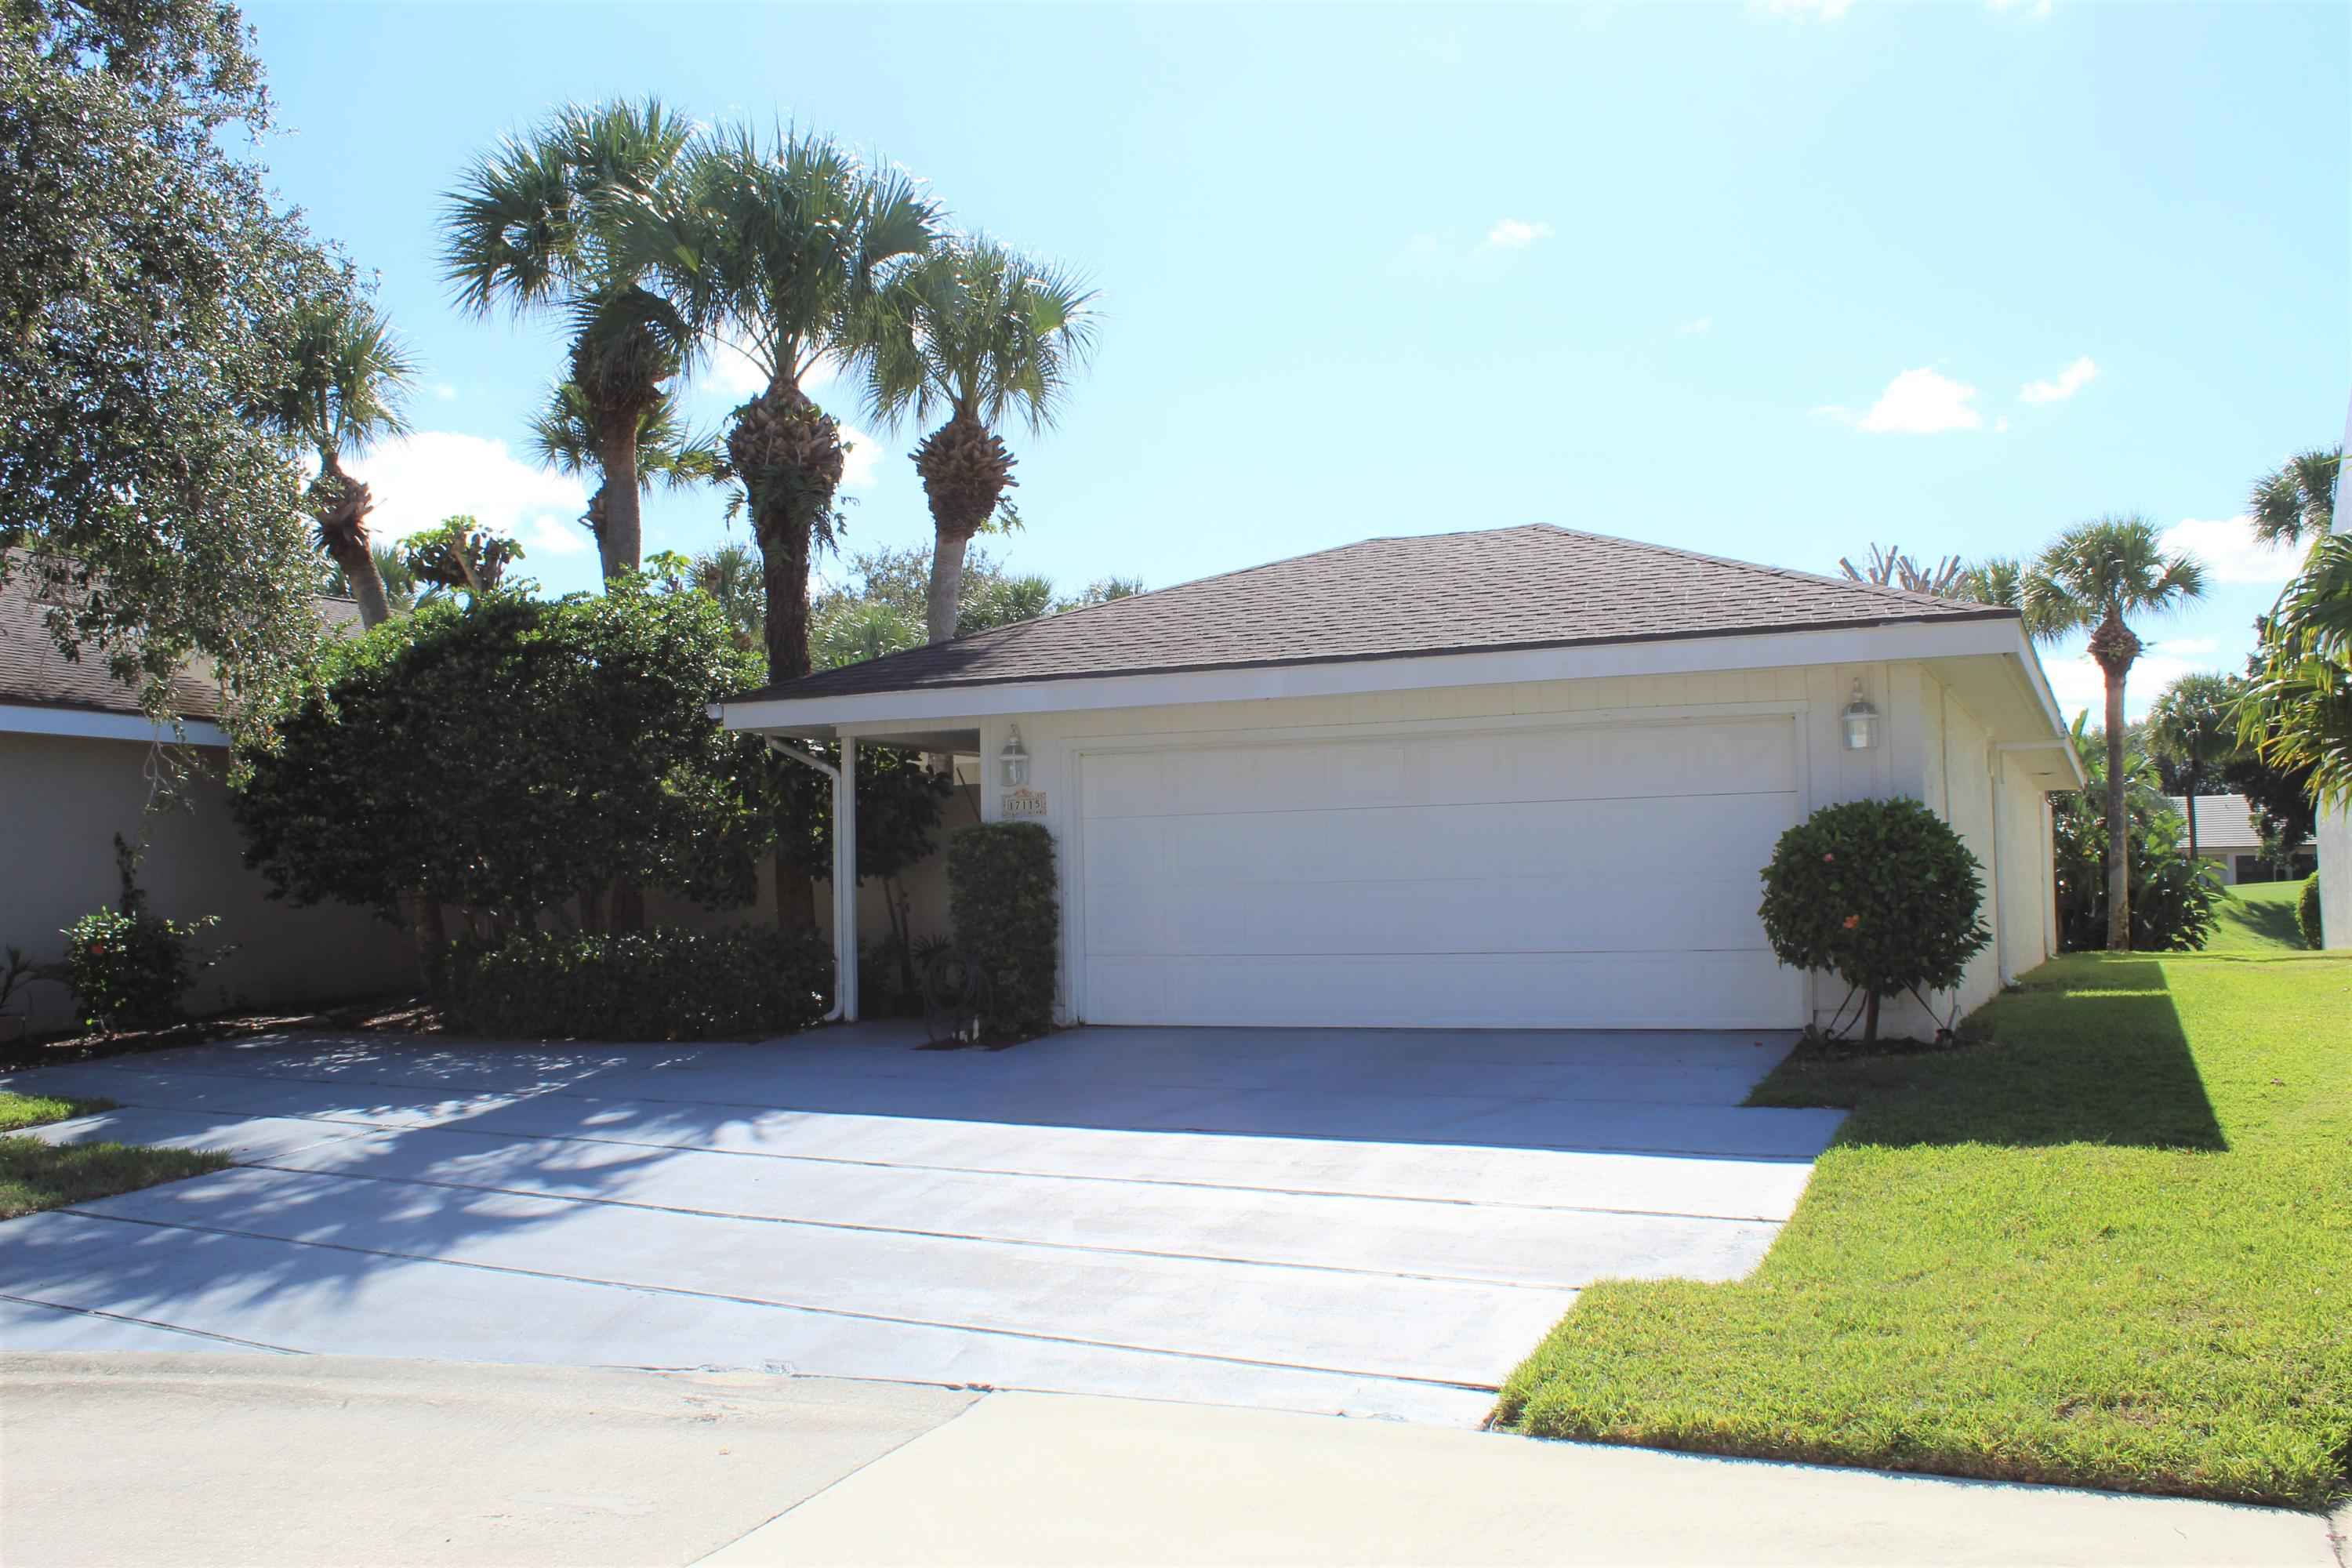 17115 Bay Street, Jupiter, Florida 33477, 2 Bedrooms Bedrooms, ,2 BathroomsBathrooms,A,Single family,Bay,RX-10562162